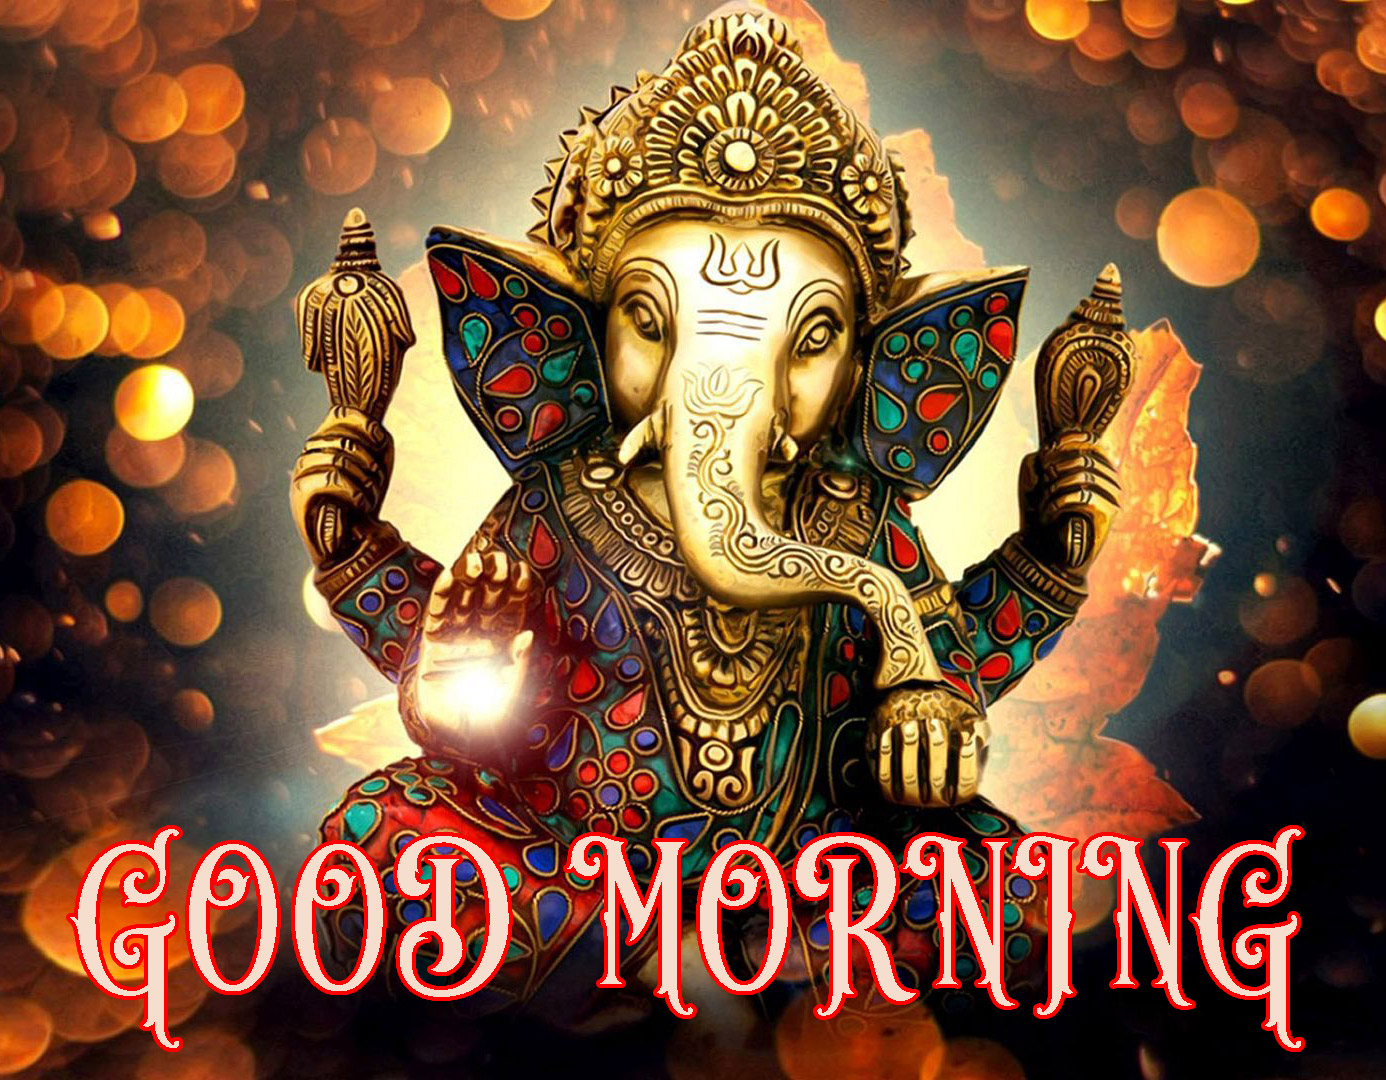 Hindi Quotes Ganesh Good Morning Images Wallpaper Pictures Photo pics Download For Facebook